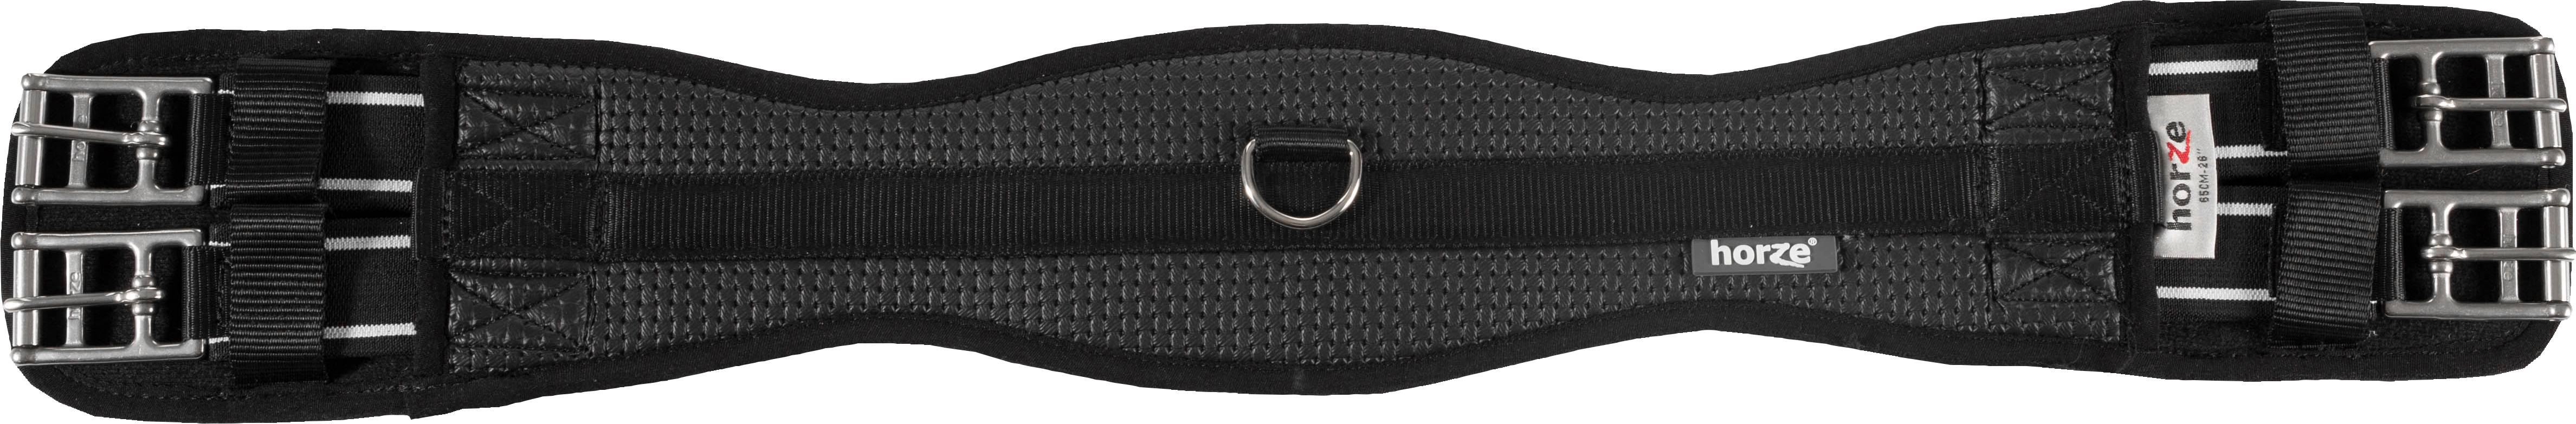 Horze Dakota Dressage Girth